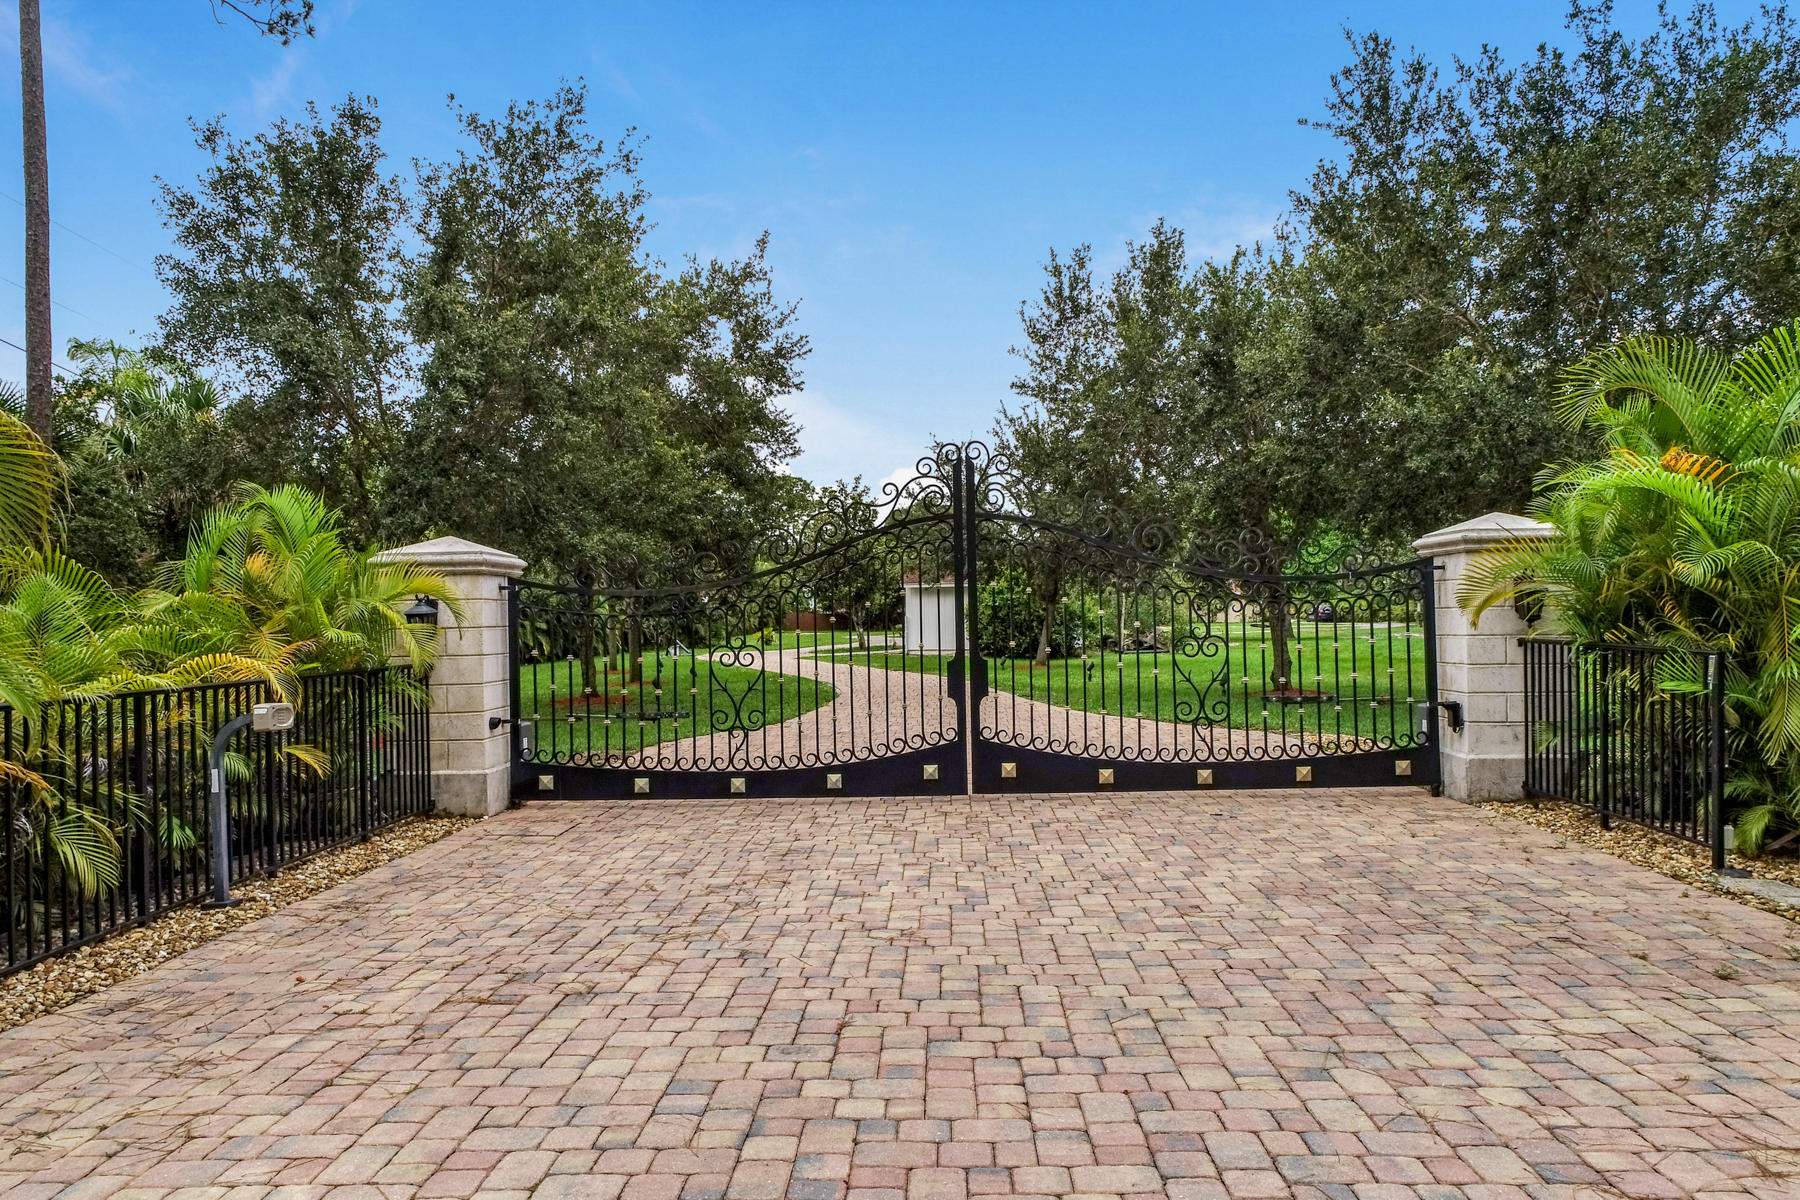 This marvelous waterfront property located within a highly desirable area of Jupiter, FL rests on over 100,000 sqft, 2.45 acres of manicured land encircled by alluring fruit trees and 500 Areca palm trees. The double gate offers an S.O.S feature for emergency vehicles and keyless, remote entry for guests and family with camera and cell phone dialing. Experience a quick getaway utilizing the unique resident access road linking to over ten thousand acres of Jonathon Dickinson State Park. This home has an automatic generator powered by five hundred gallons of underground propane tank, backup water system, Tank-less propane water heater. The interior of this two-floor gem provides residents with seven bedrooms, six bathrooms, which does include a ground floor master suite with a large marble bathroom and deck; spacious chef kitchen with stainless steel appliances; gas stove range and electric oven; a large island with seating up to six; elegant Marble and Wood flooring; plantation shutters, and high impact windows. All windows, doors are with an analog monitored alarm with powered backup.  Conveniently nestled within the property exterior for relaxation and outdoor entertainment is a commodious patio; heated outdoor pool, jacuzzi with full cabana shower; 11K boat lift, a floating wave runner dock attached to NW Loxahatchee River. Ten minutes to the beach via car or to the inlet by boat and less than three hours to Bahamas (depending on hp). This home also provides the highest underground Internet cable of one Gigabyte of download speed.